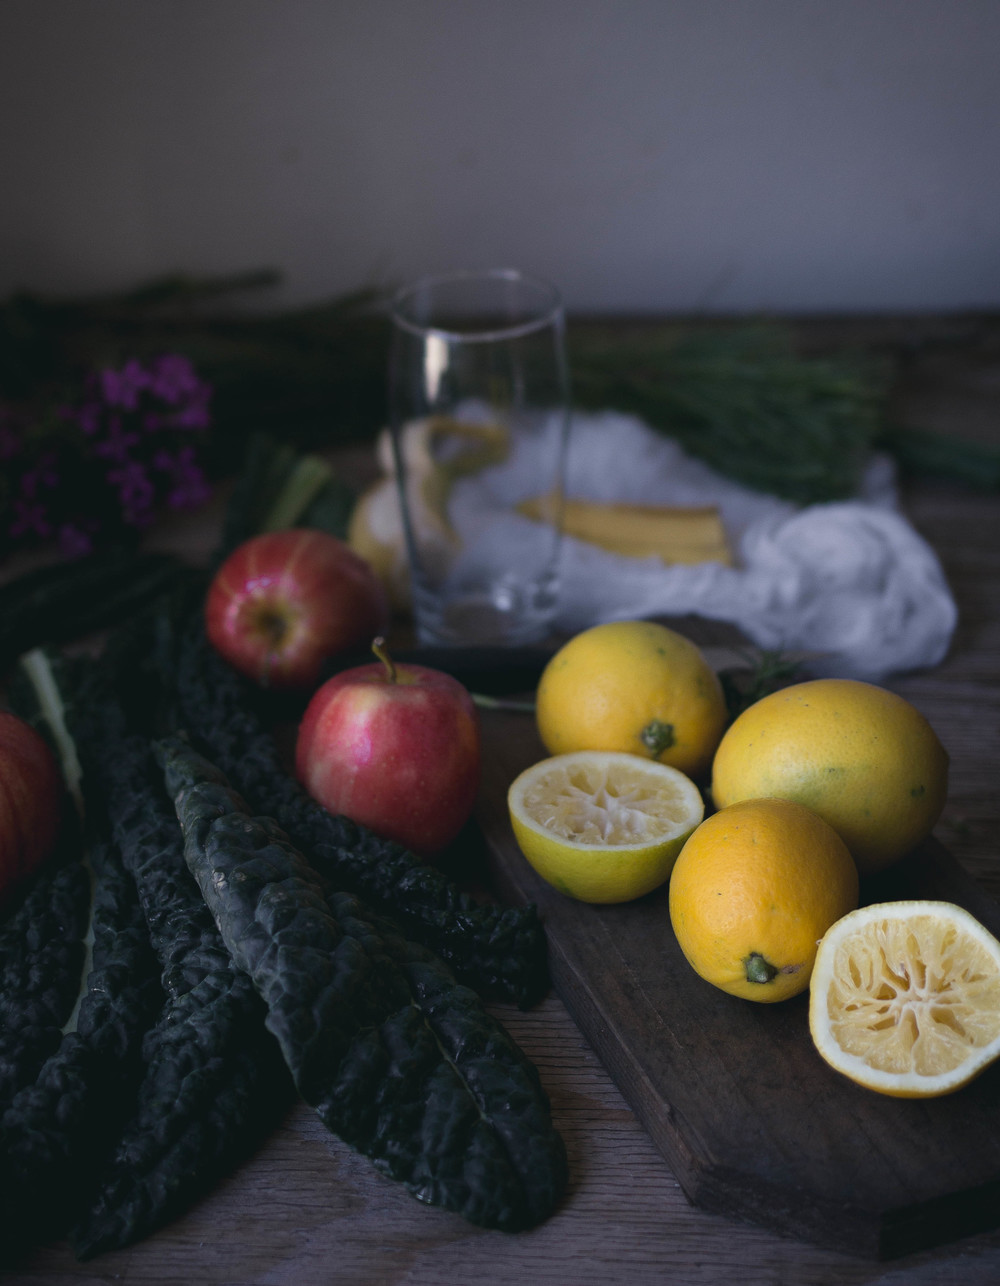 Ingredients for a kale and fruit smoothie | by fit for the soul